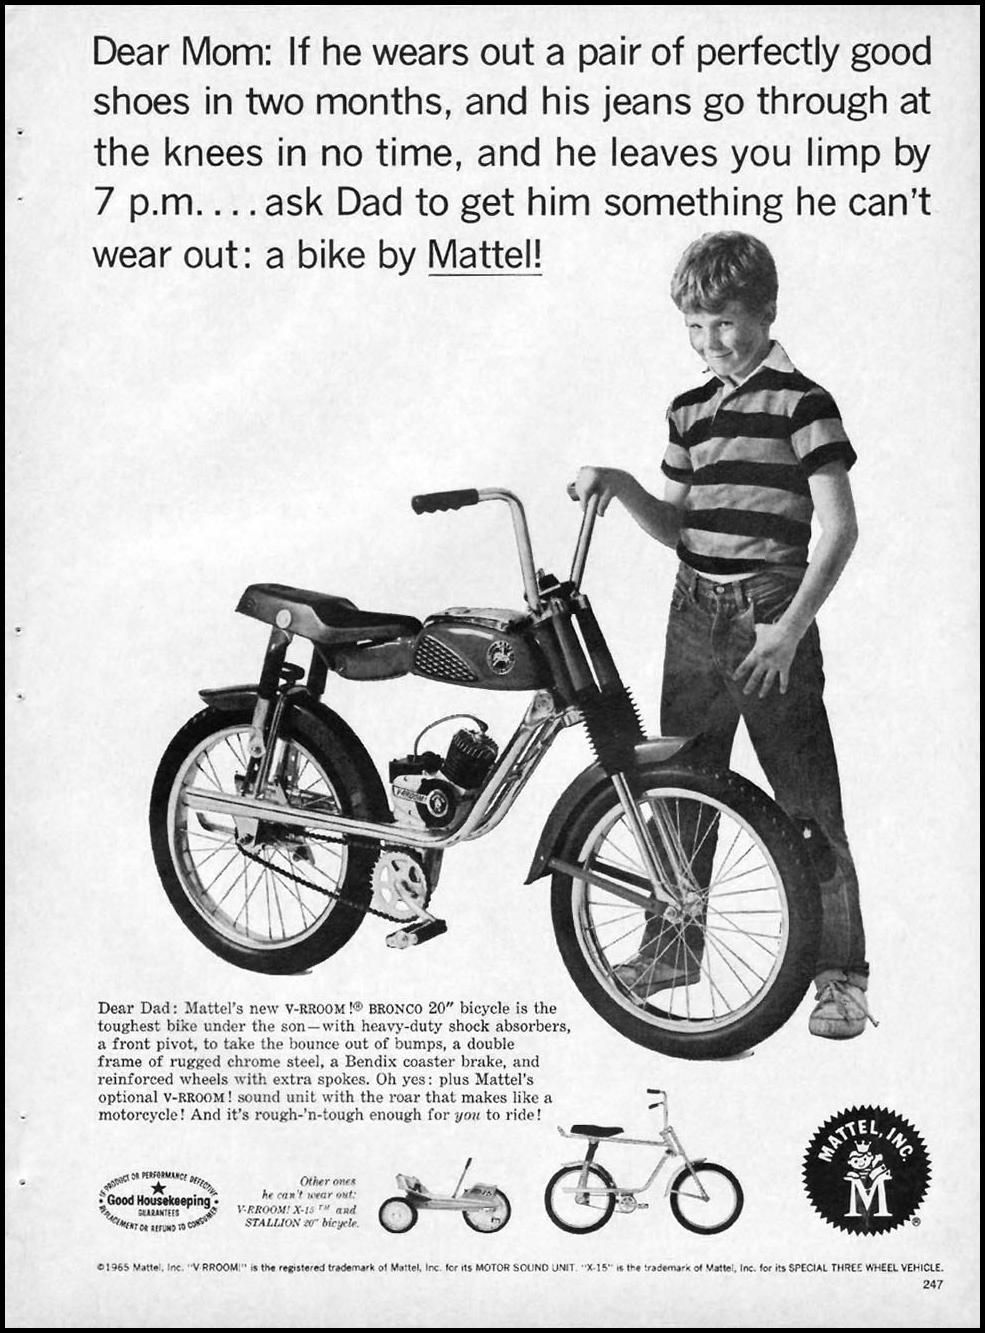 MATTEL V-RROOM! BRONCO BICYCLE GOOD HOUSEKEEPING 10/01/1965 p. 247